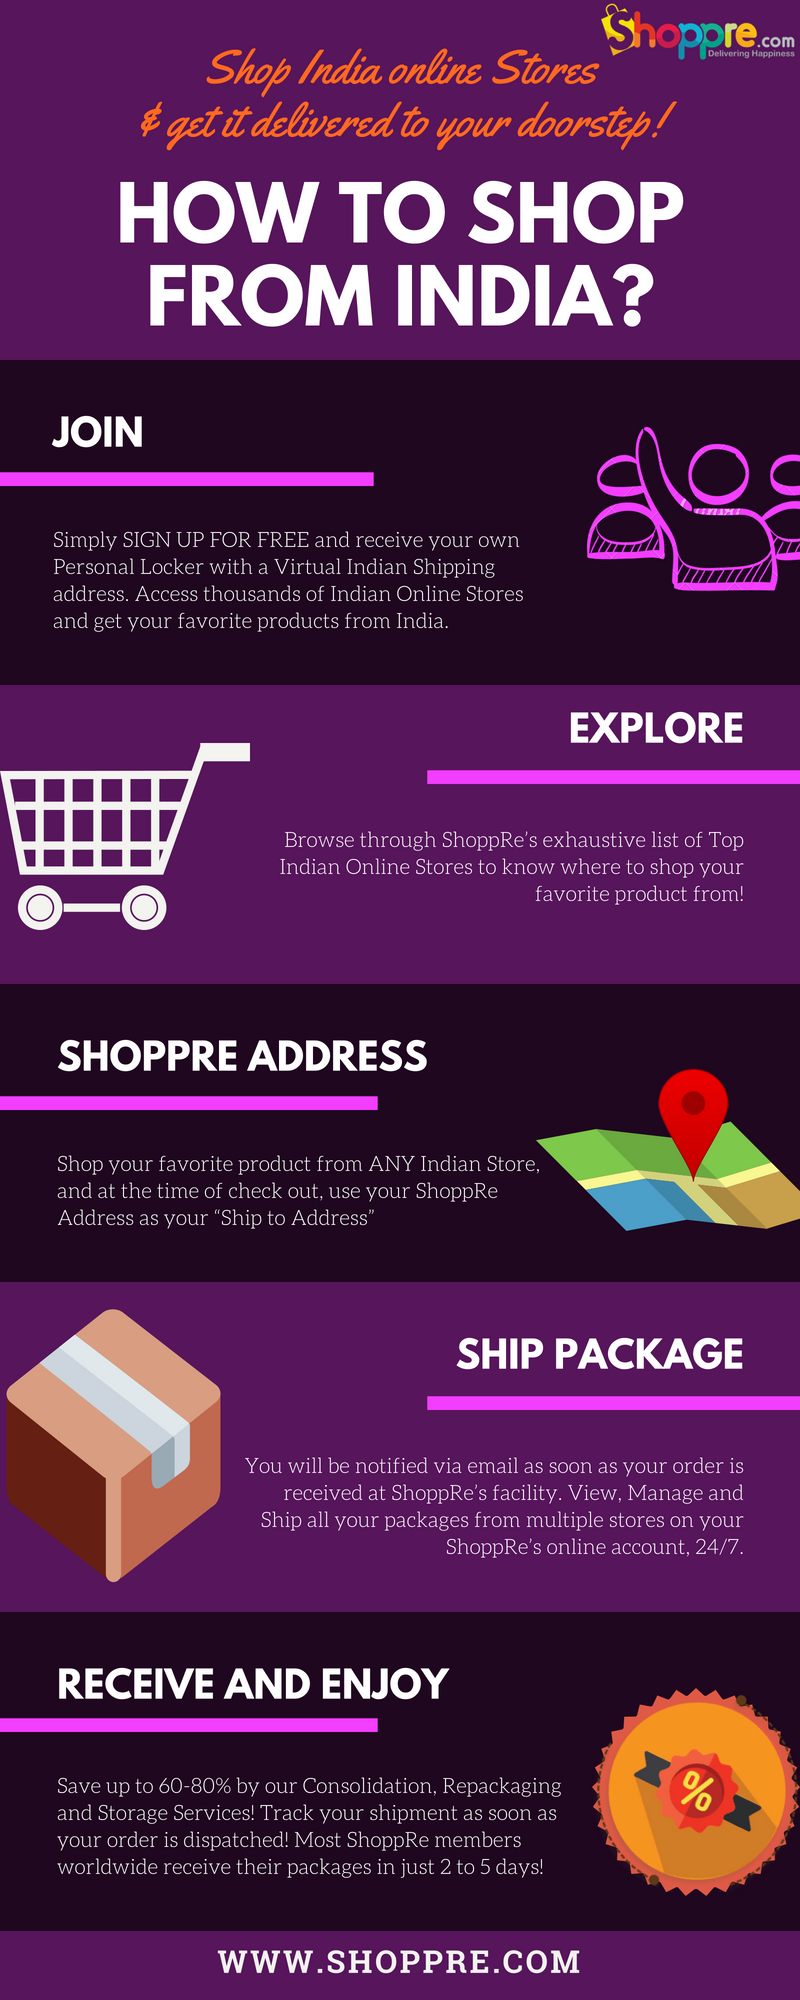 Shop & Ship — buy in India, ship online and we deliver it to you